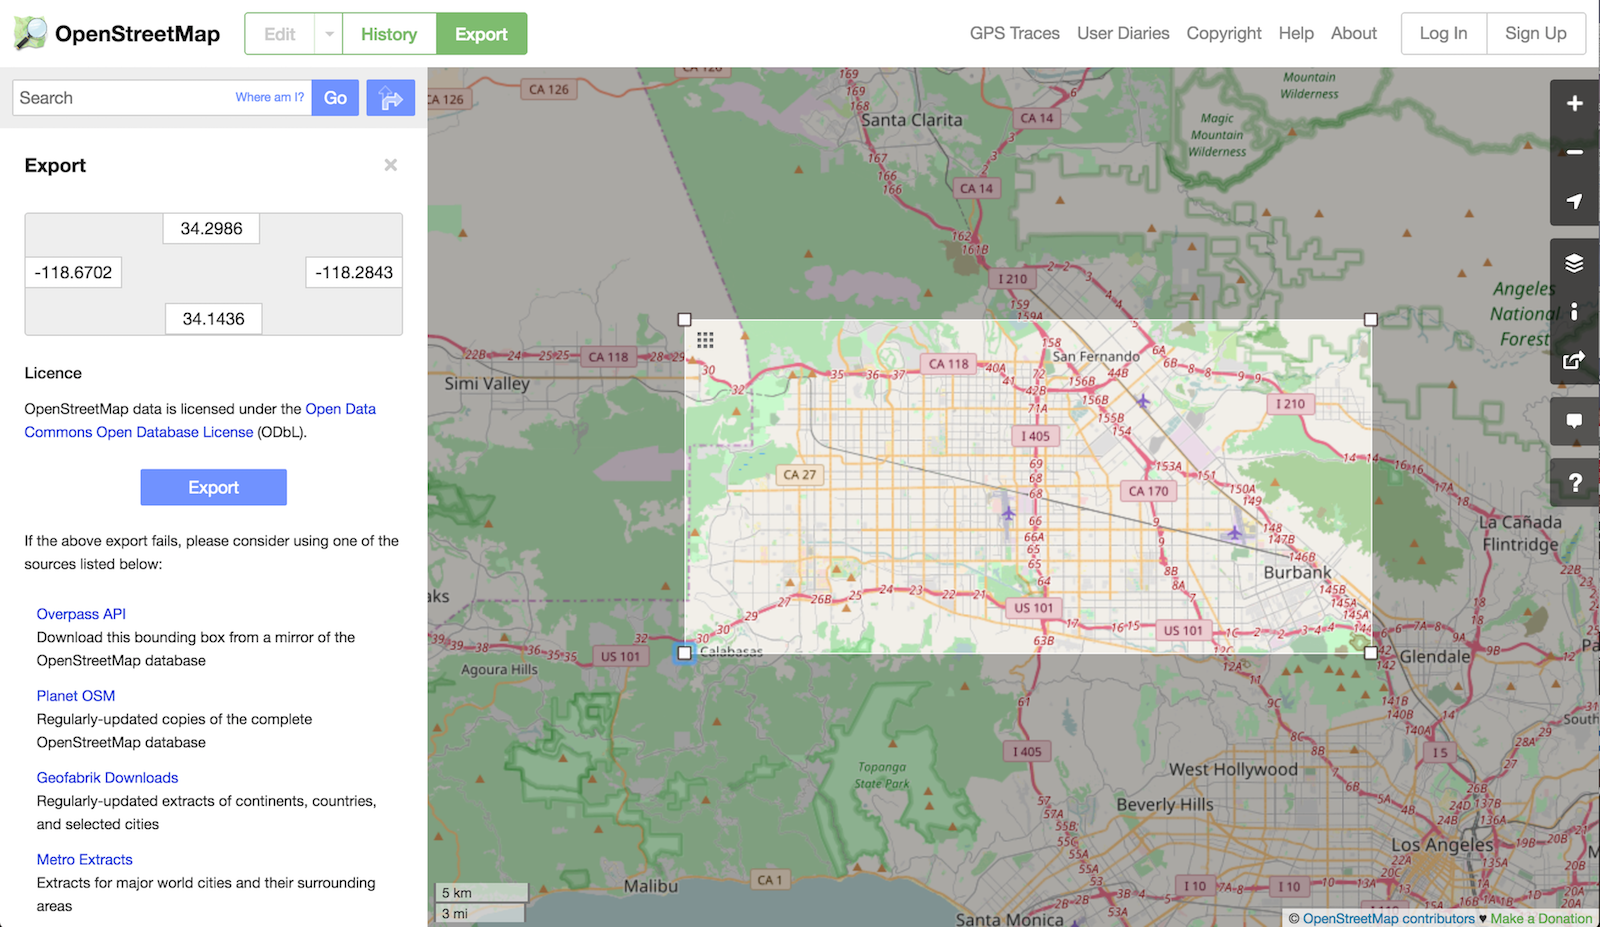 GeoFile: How to Transform OpenStreetMap Data into GeoJSON Using GDAL